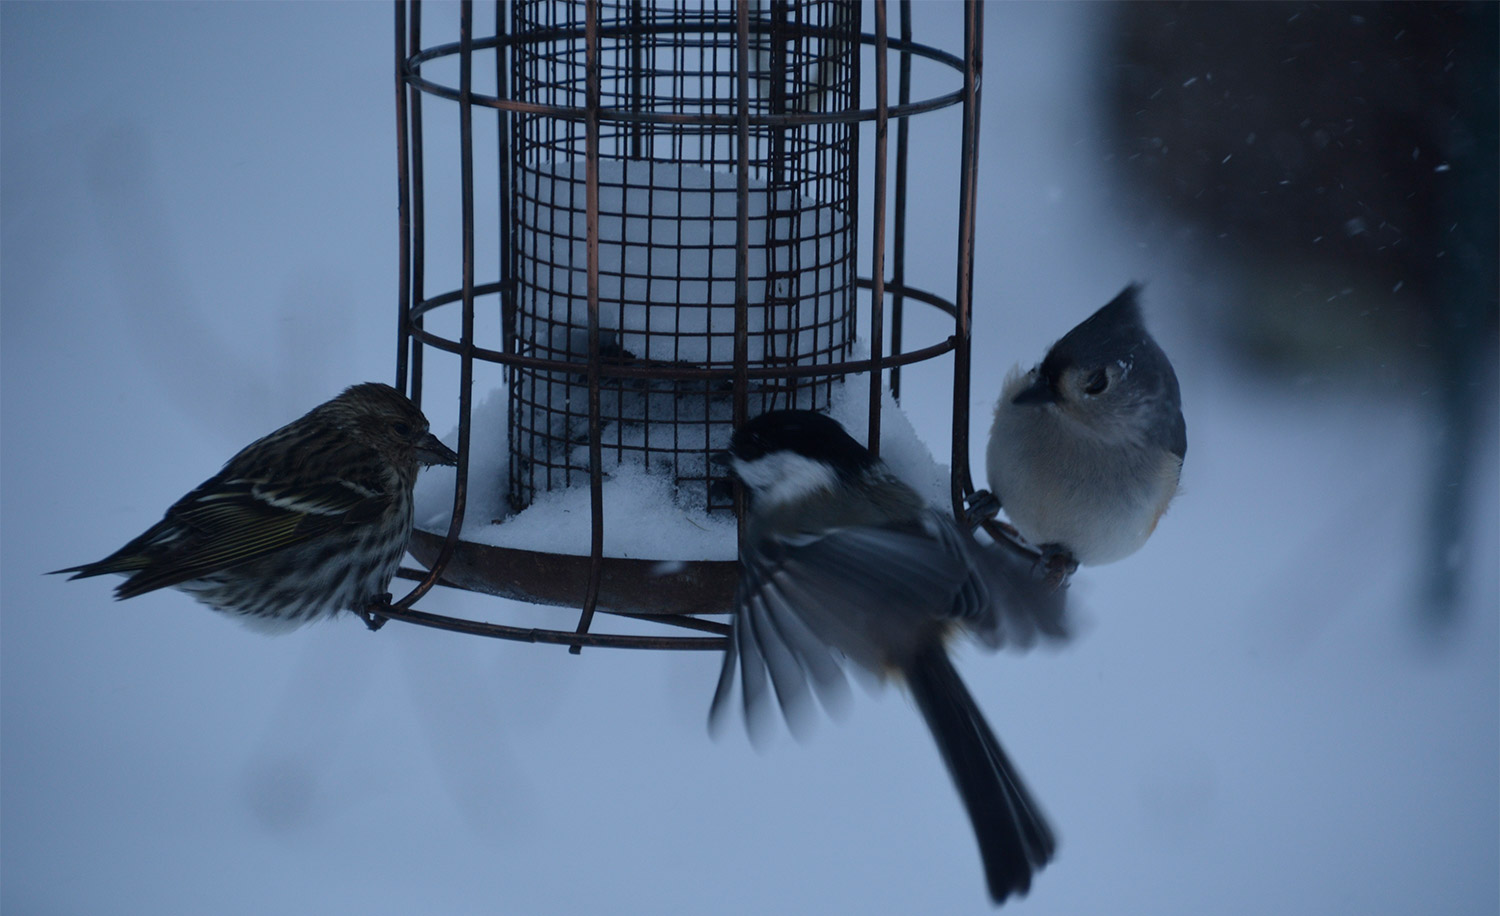 The suet was cold at Francis Baldwin's feeder in Naples, but still helped sustain a trio of little birds, while a fourth seat at the table went vacant. Needless to say, the birds are hoping Baldwin fills up that feeder – and soon.